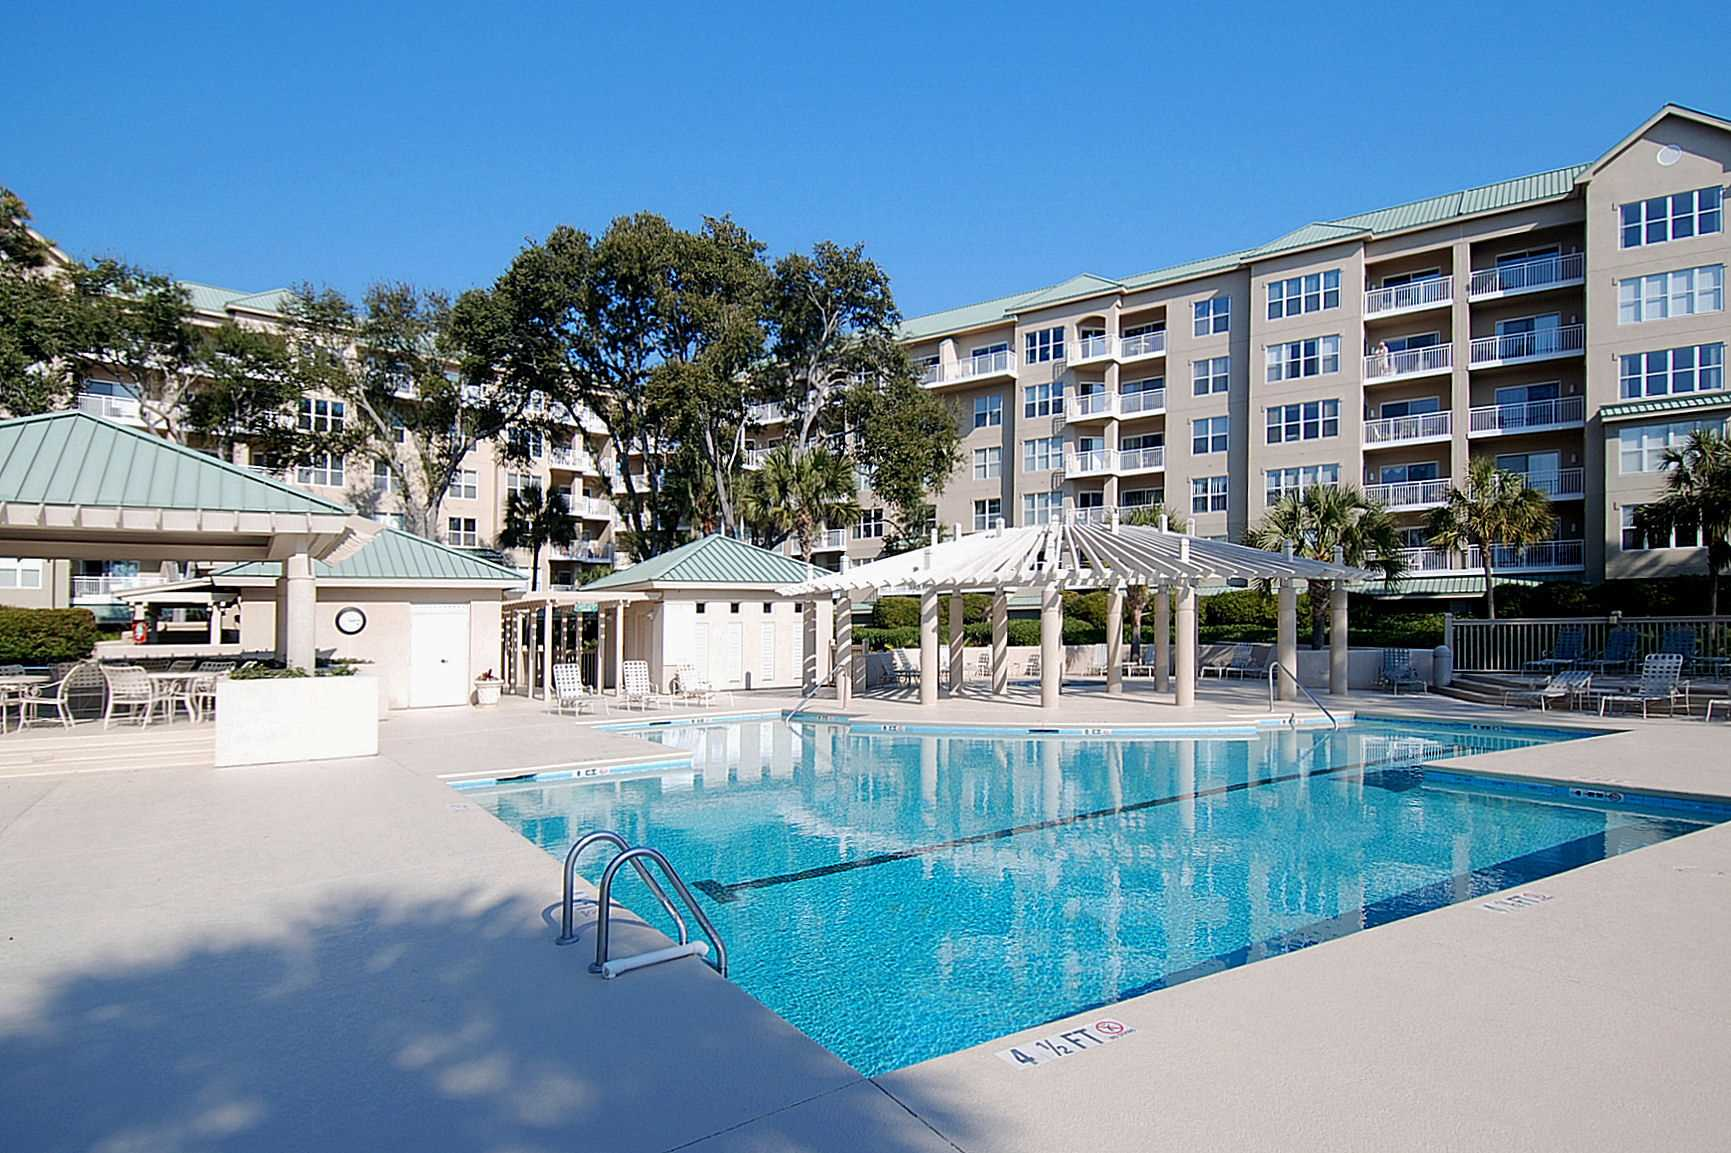 The pool is heated Mar 15 to April 30th The pool is cooled J